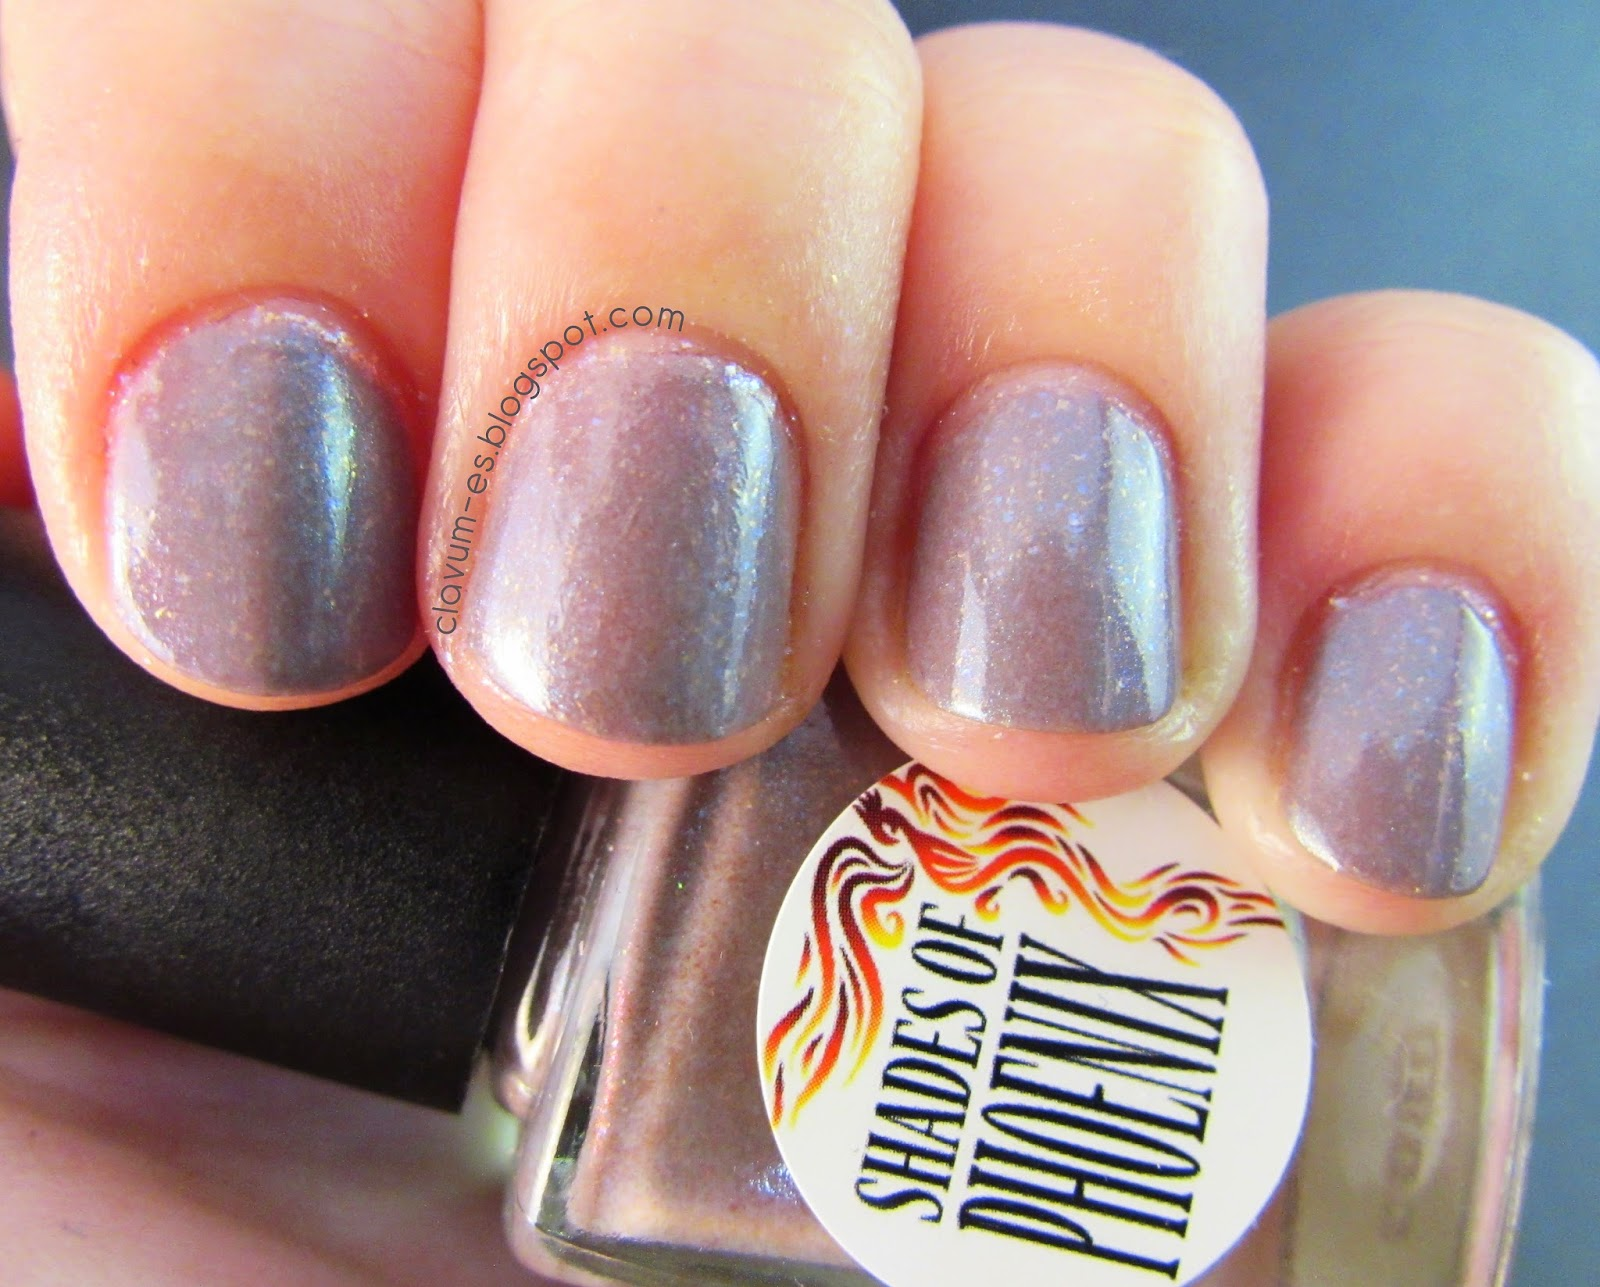 Shades of Phoenix - Earl Grey Swatch